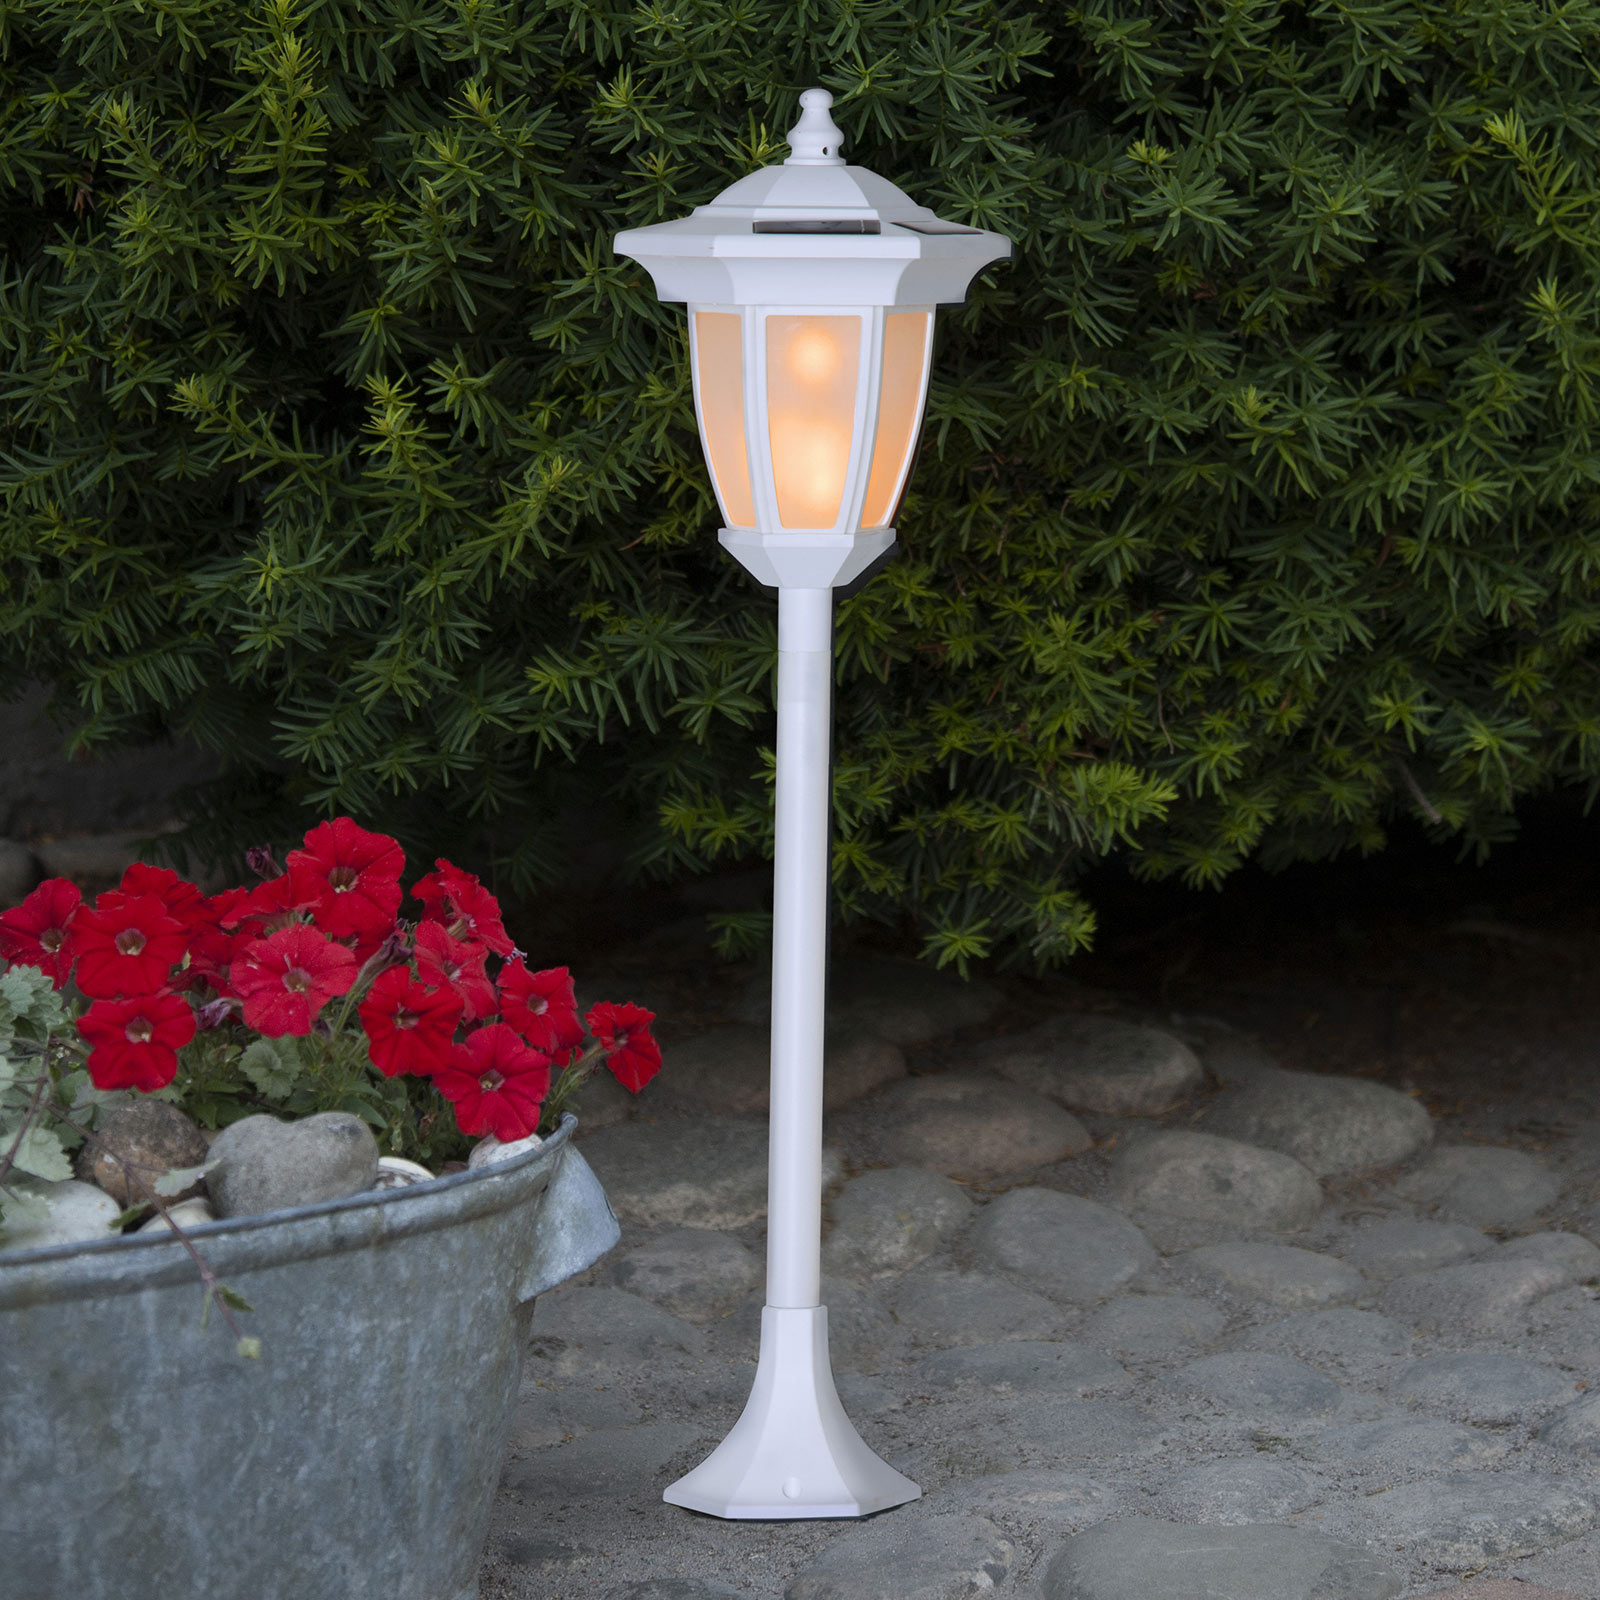 LED-Solarleuchte Flame, 4 in 1, weiß